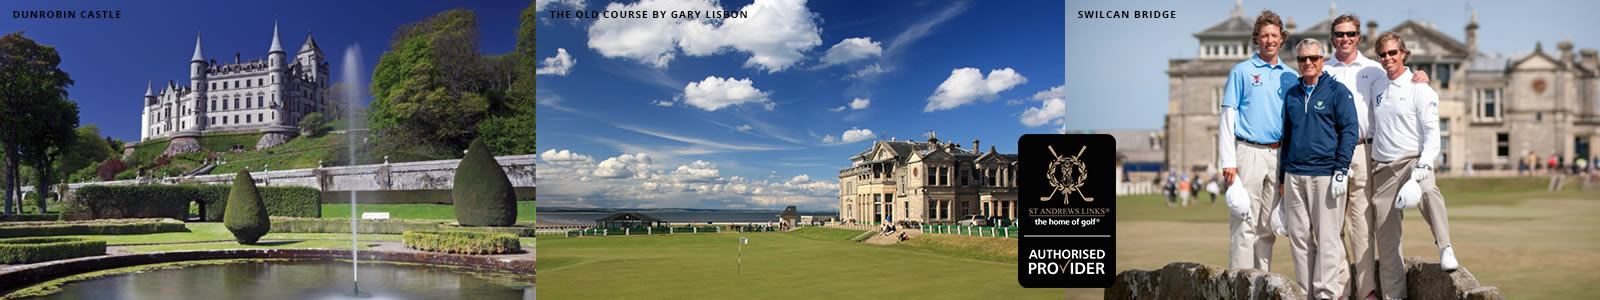 Scottish Golf Cruising Packages Scotland and Golf Vacations Scotland